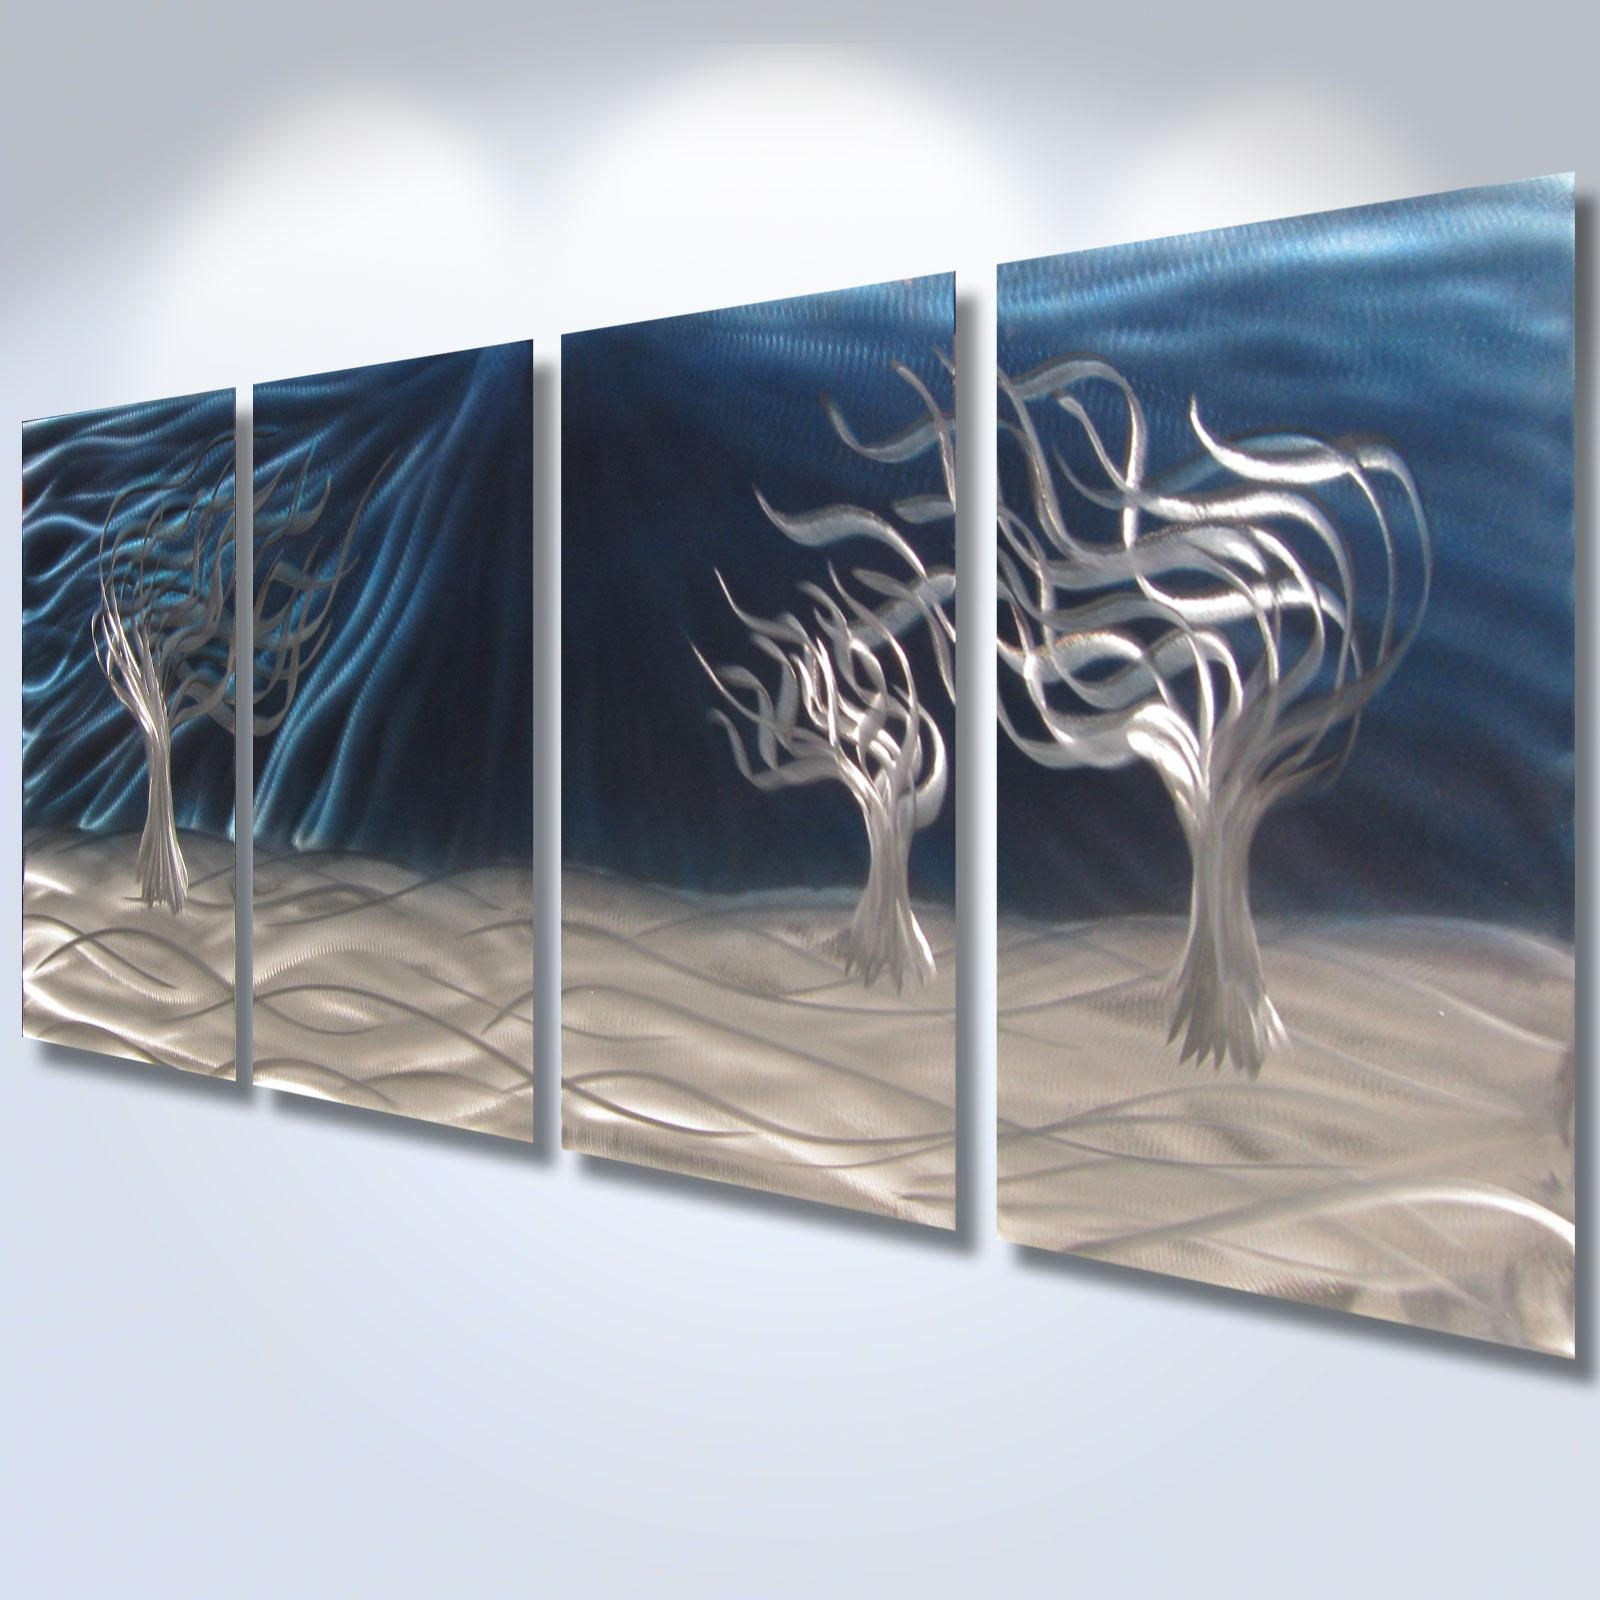 3 Trees Blue - Abstract Metal Wall Art Contemporary Modern Decor with Metal Tree Wall Art Sculpture